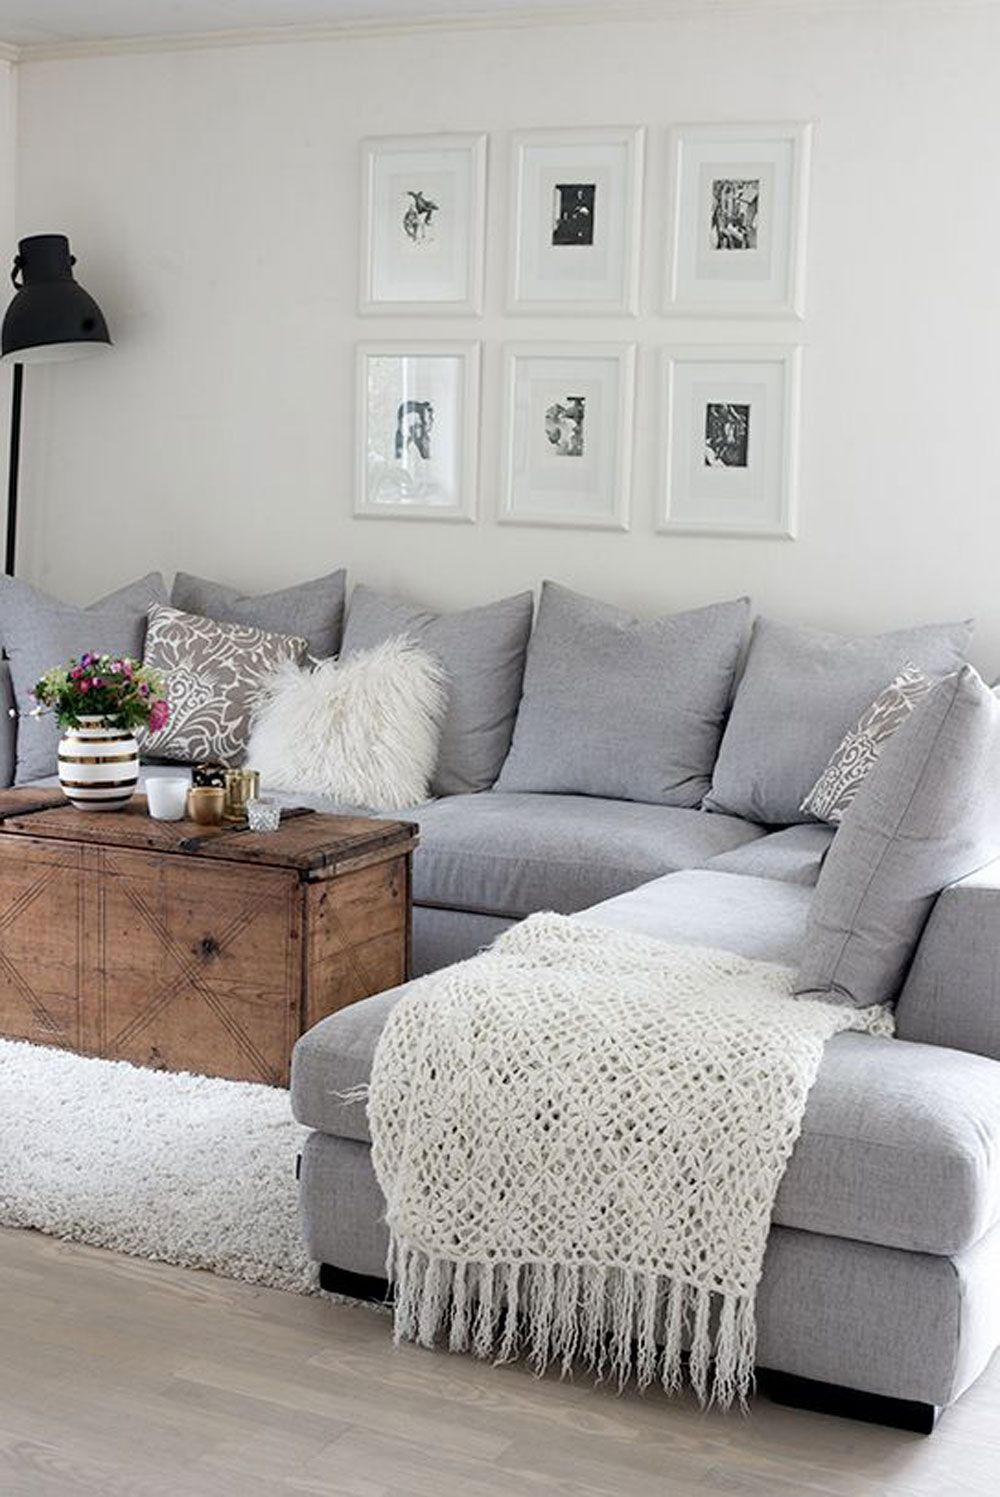 Grey Sofa Grey Couch House Decor Home Decor Living Room Grey Small